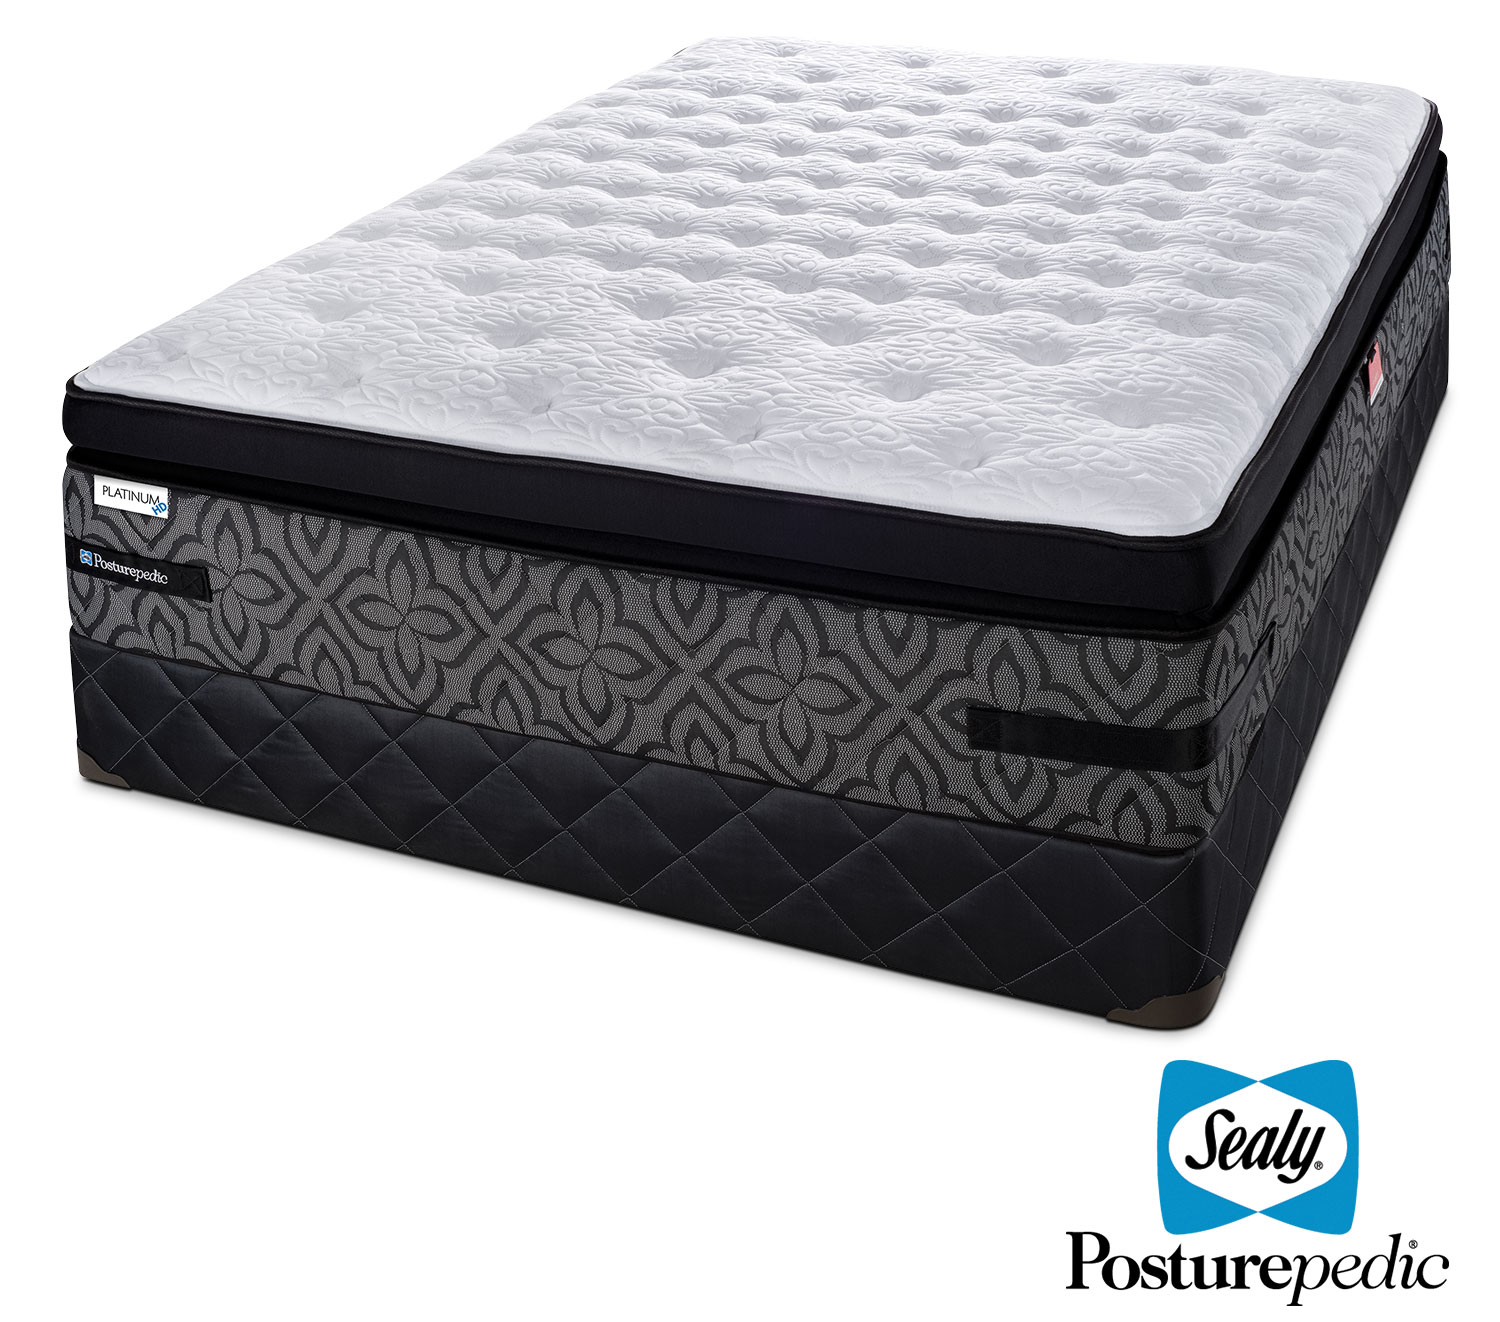 Sealy Posturepedic 3 K Cushion Firm Queen Mattress and Boxspring Set